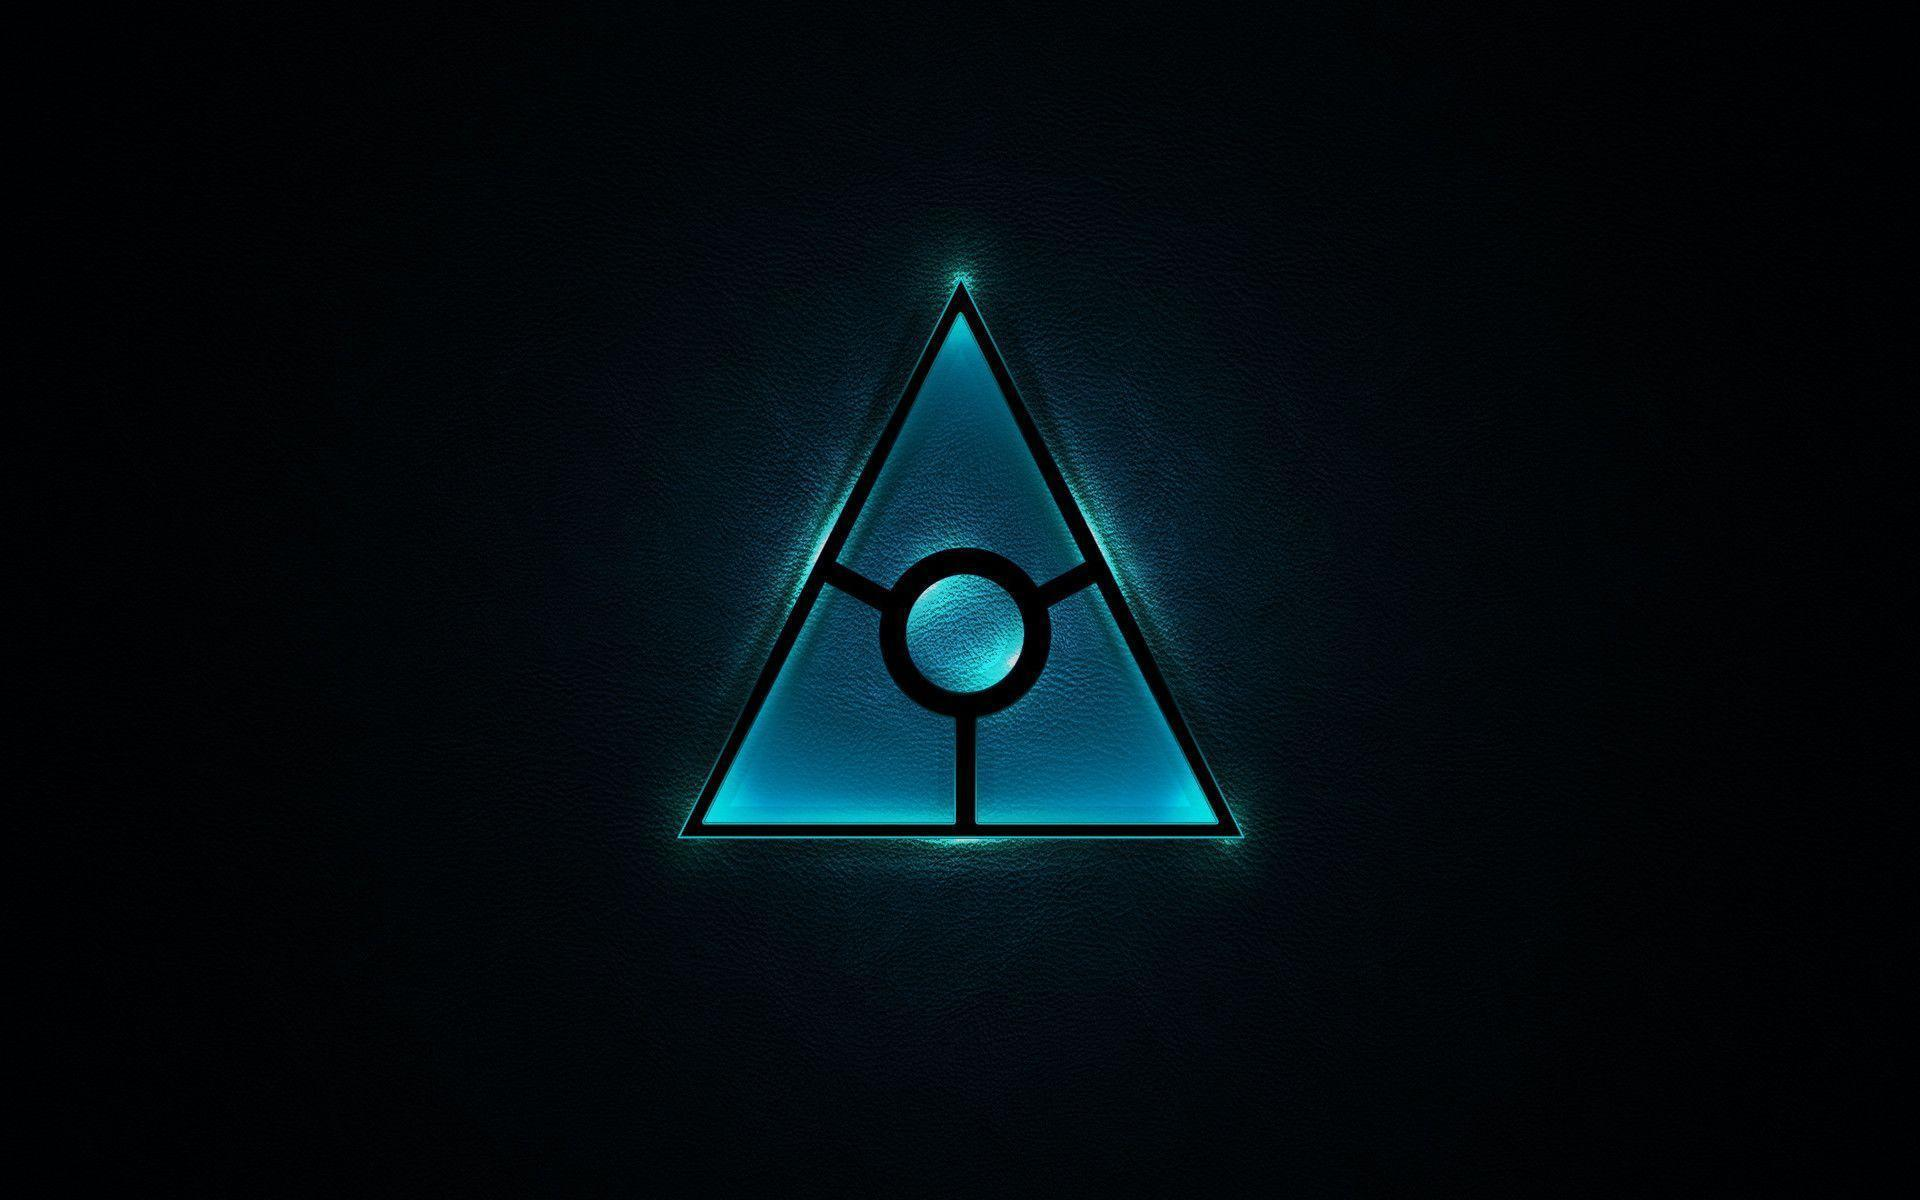 illuminati triangle wallpaper hd - photo #4